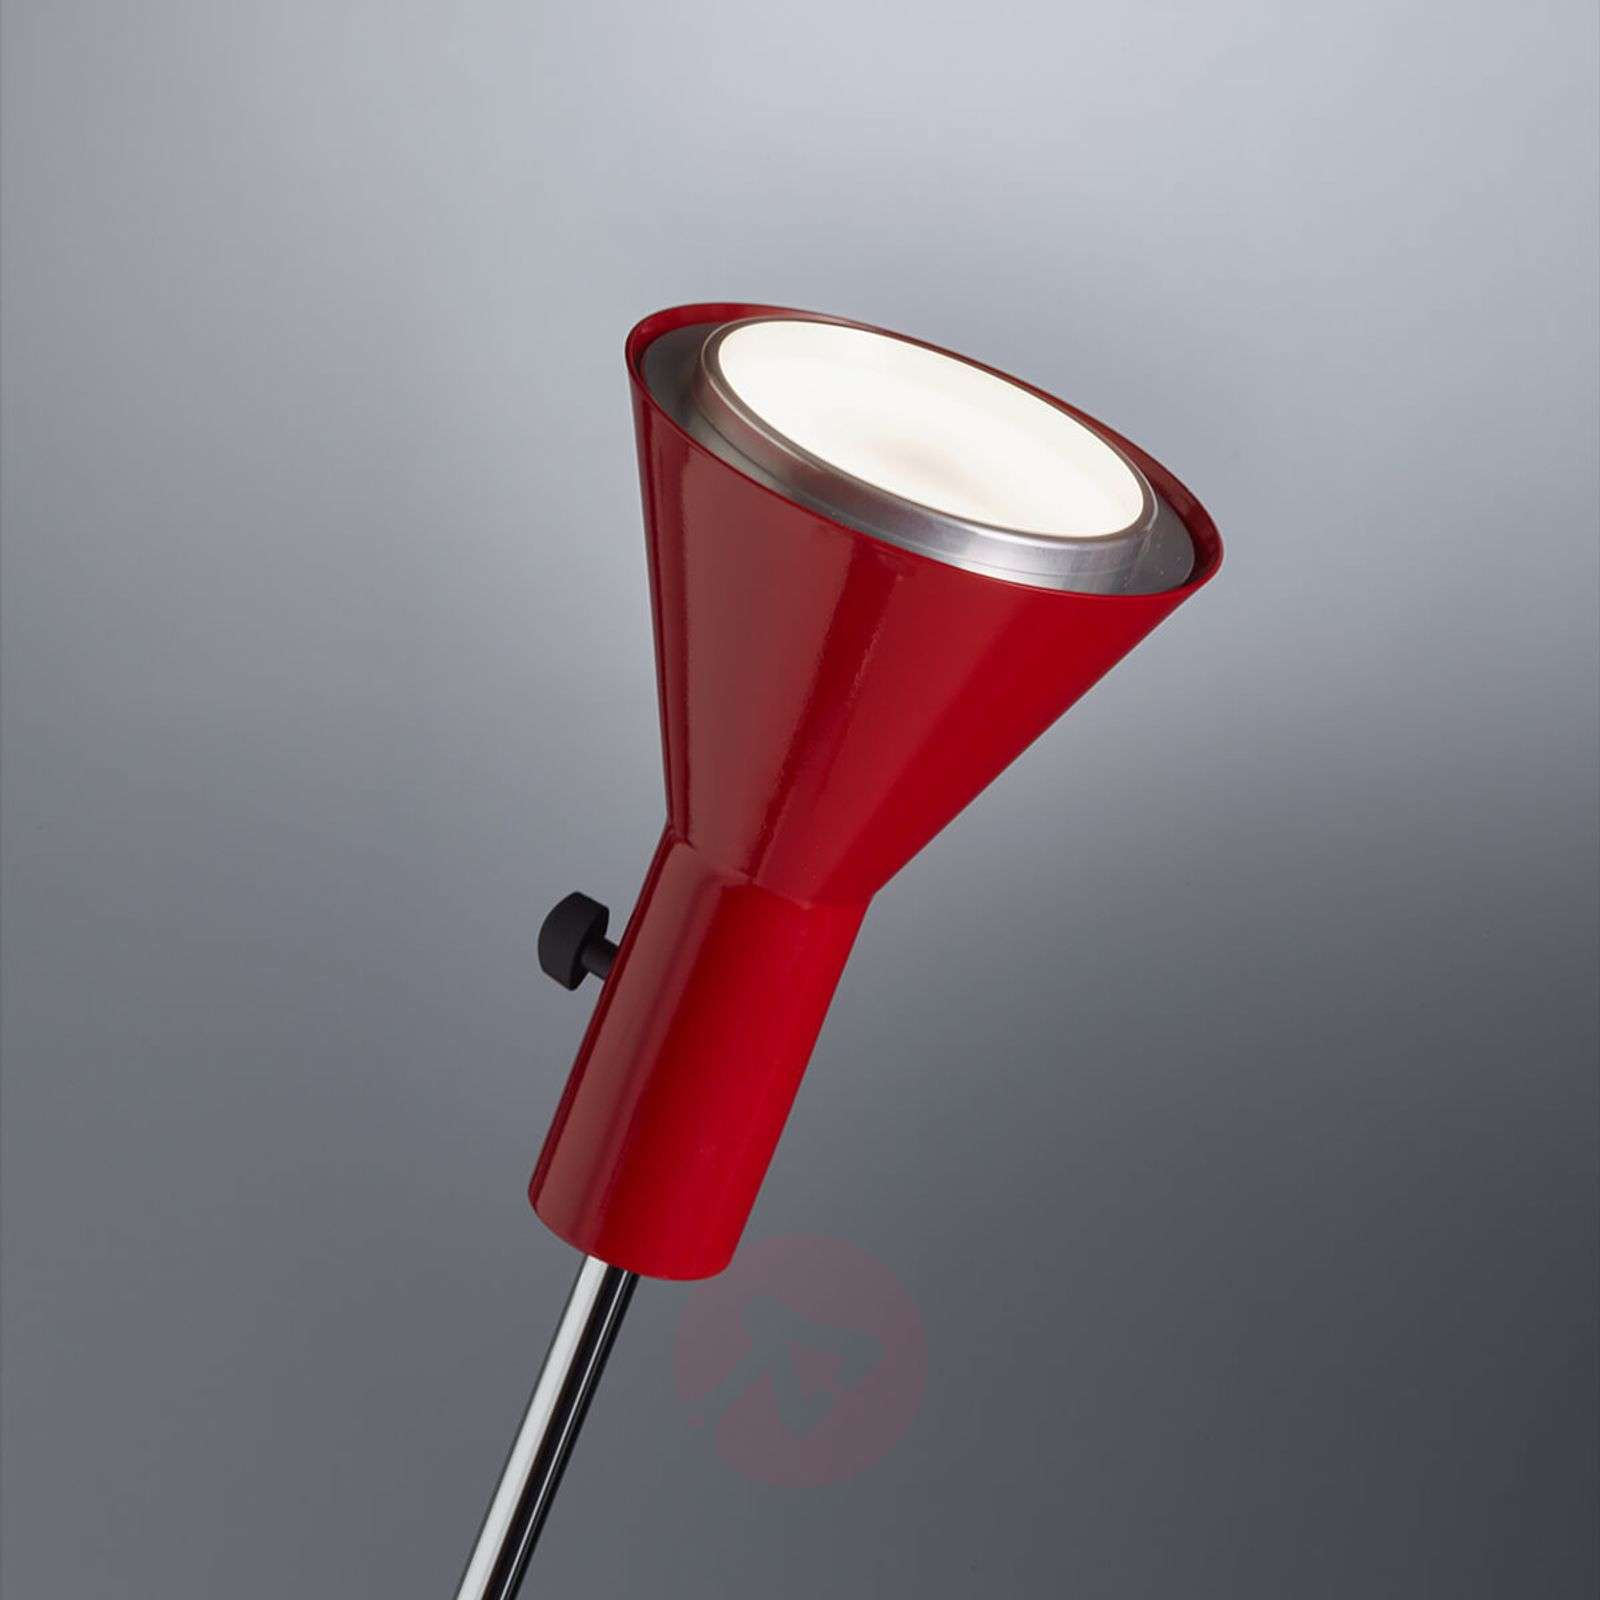 Dimmable LED floor lamp Gru in red-9030223-01